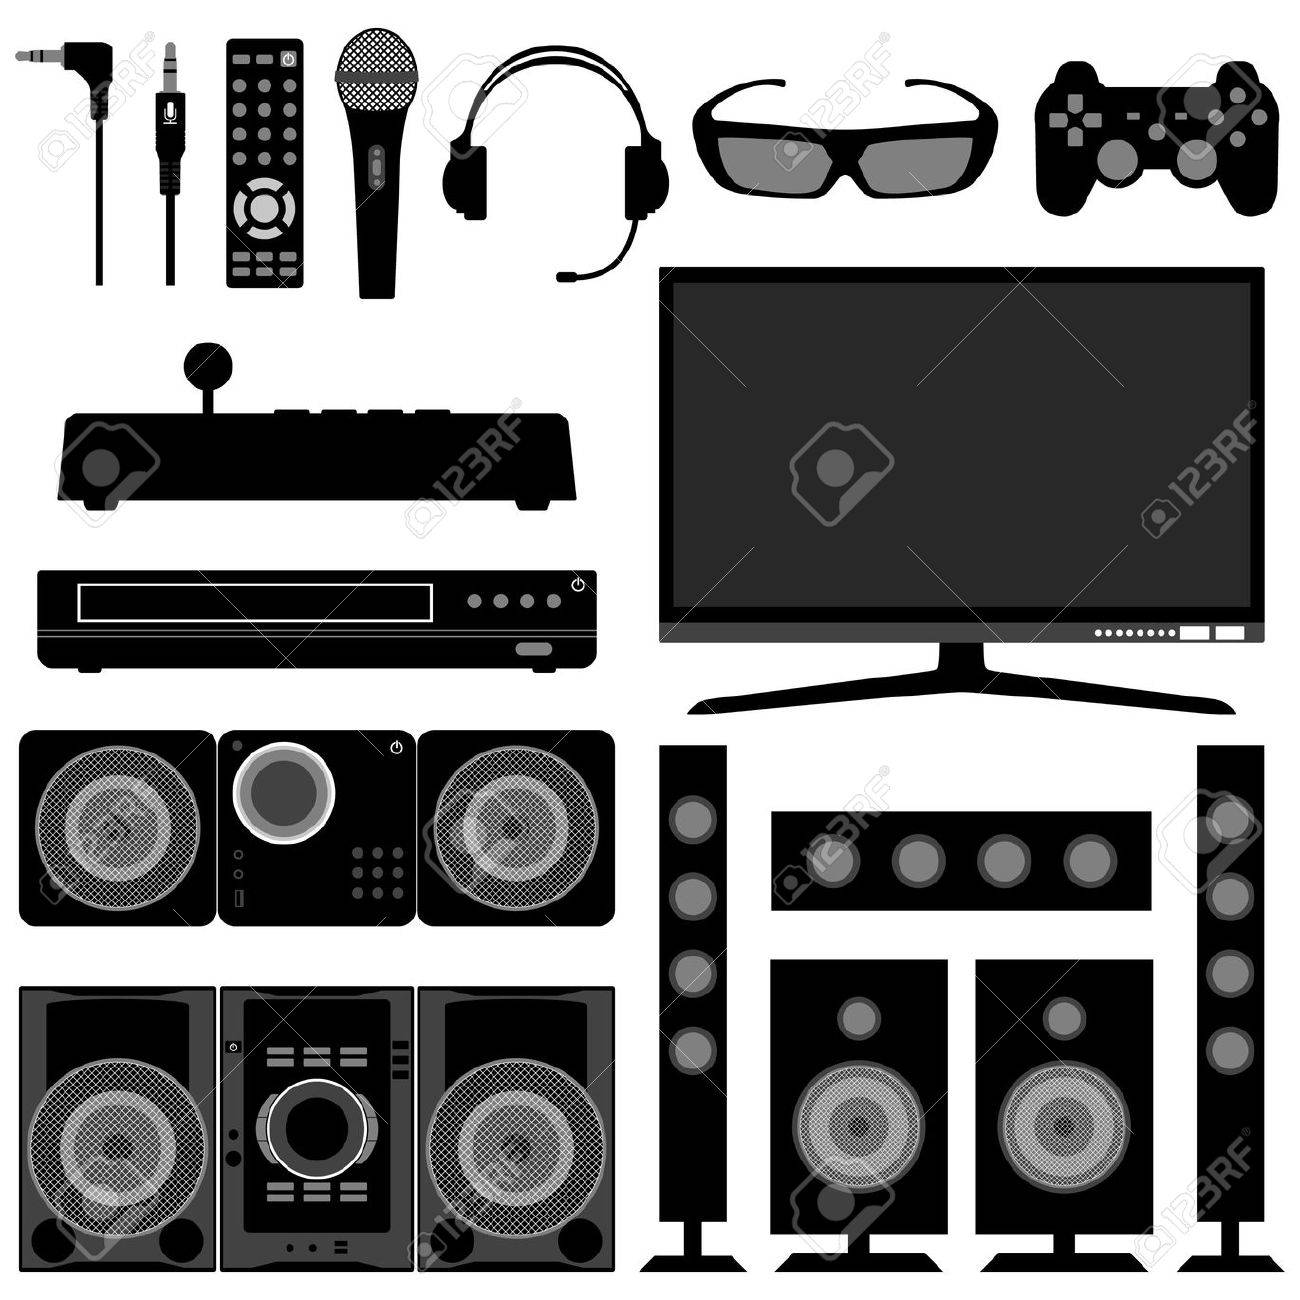 living room appliances. Audio Visual System Electronic Electrical Appliances for Living Room Stock  Vector 18811993 For